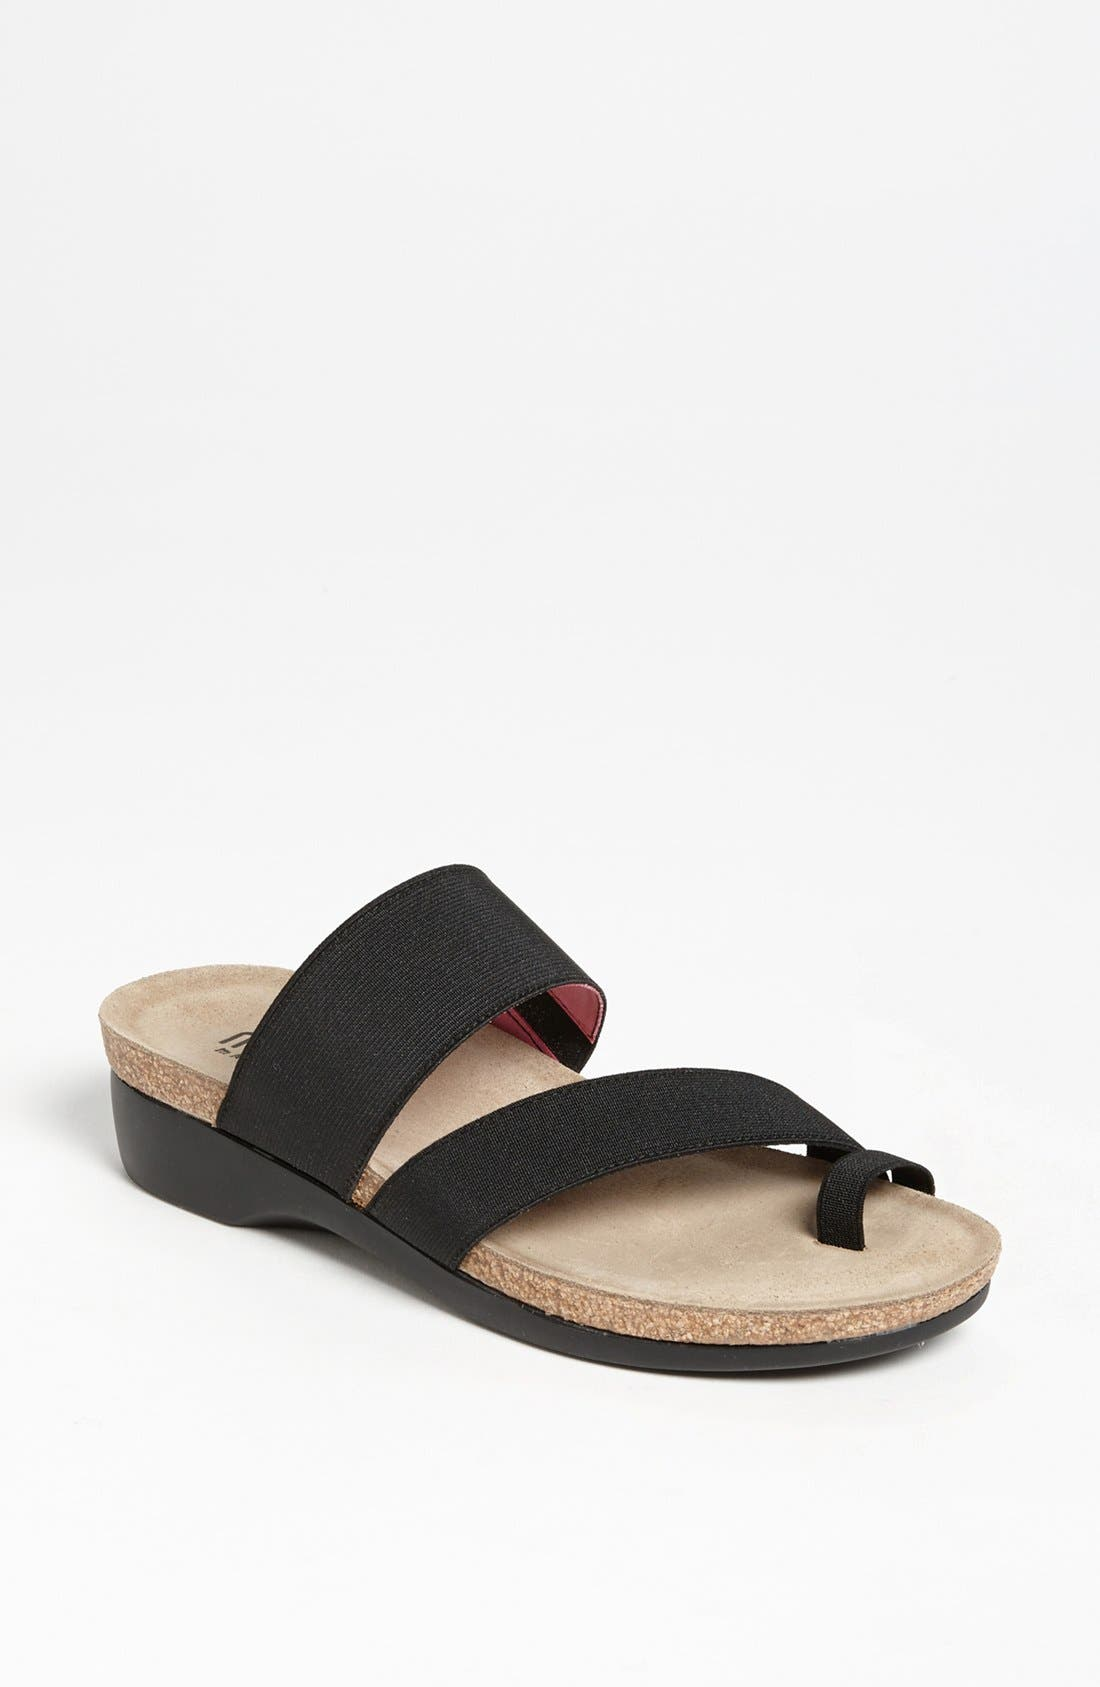 'Aries' Sandal,                             Main thumbnail 1, color,                             BLACK